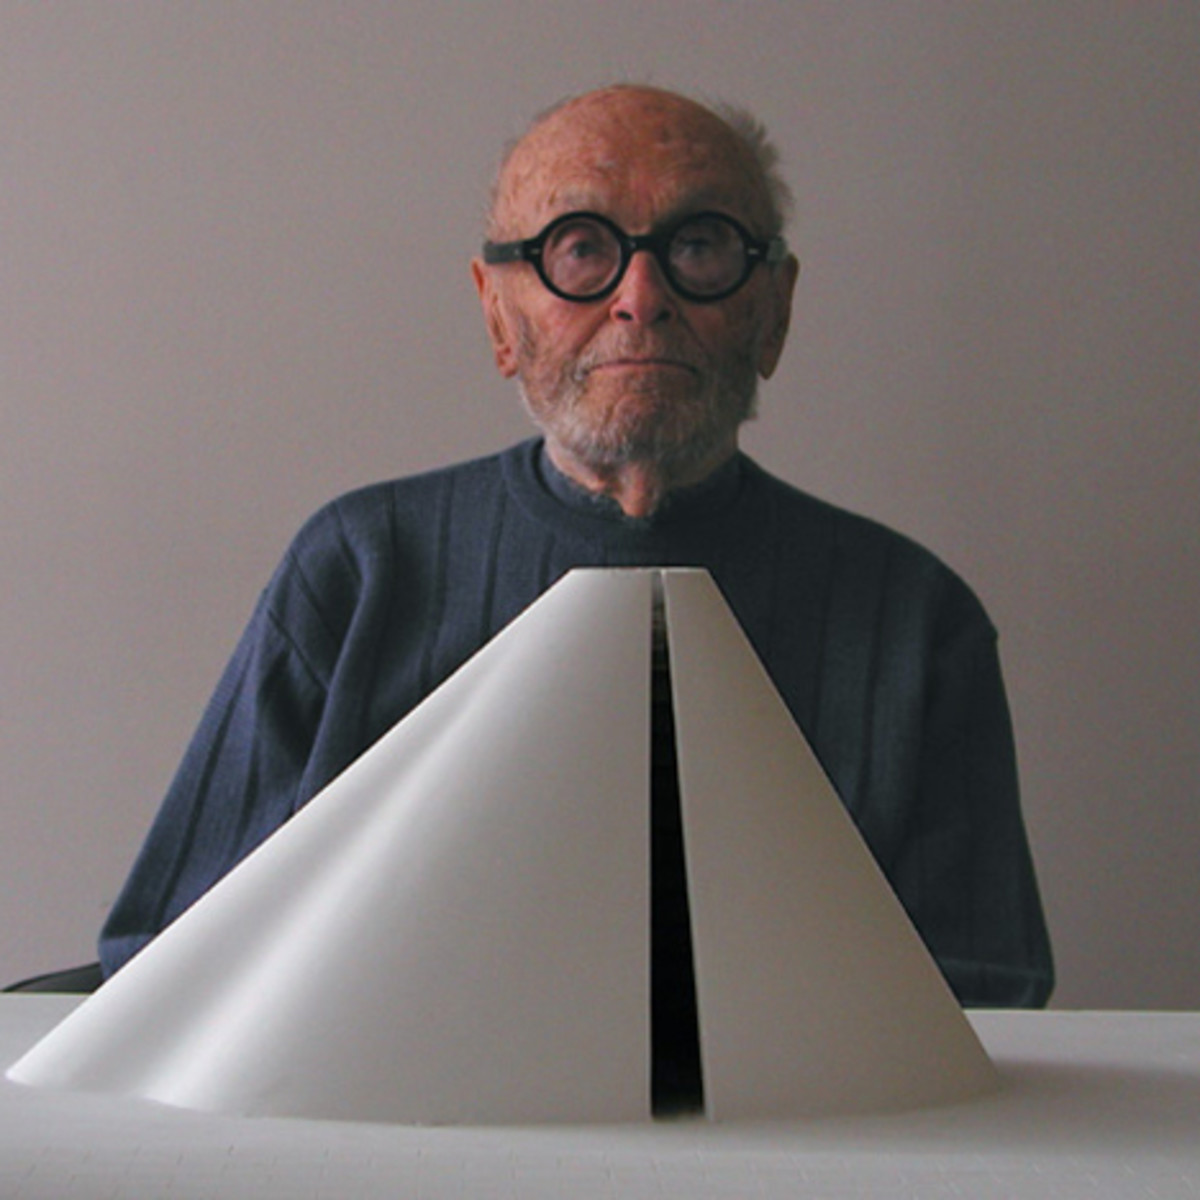 Philip Johnson, one of the founders of Internationalism but also a pioneer into Postmodernism